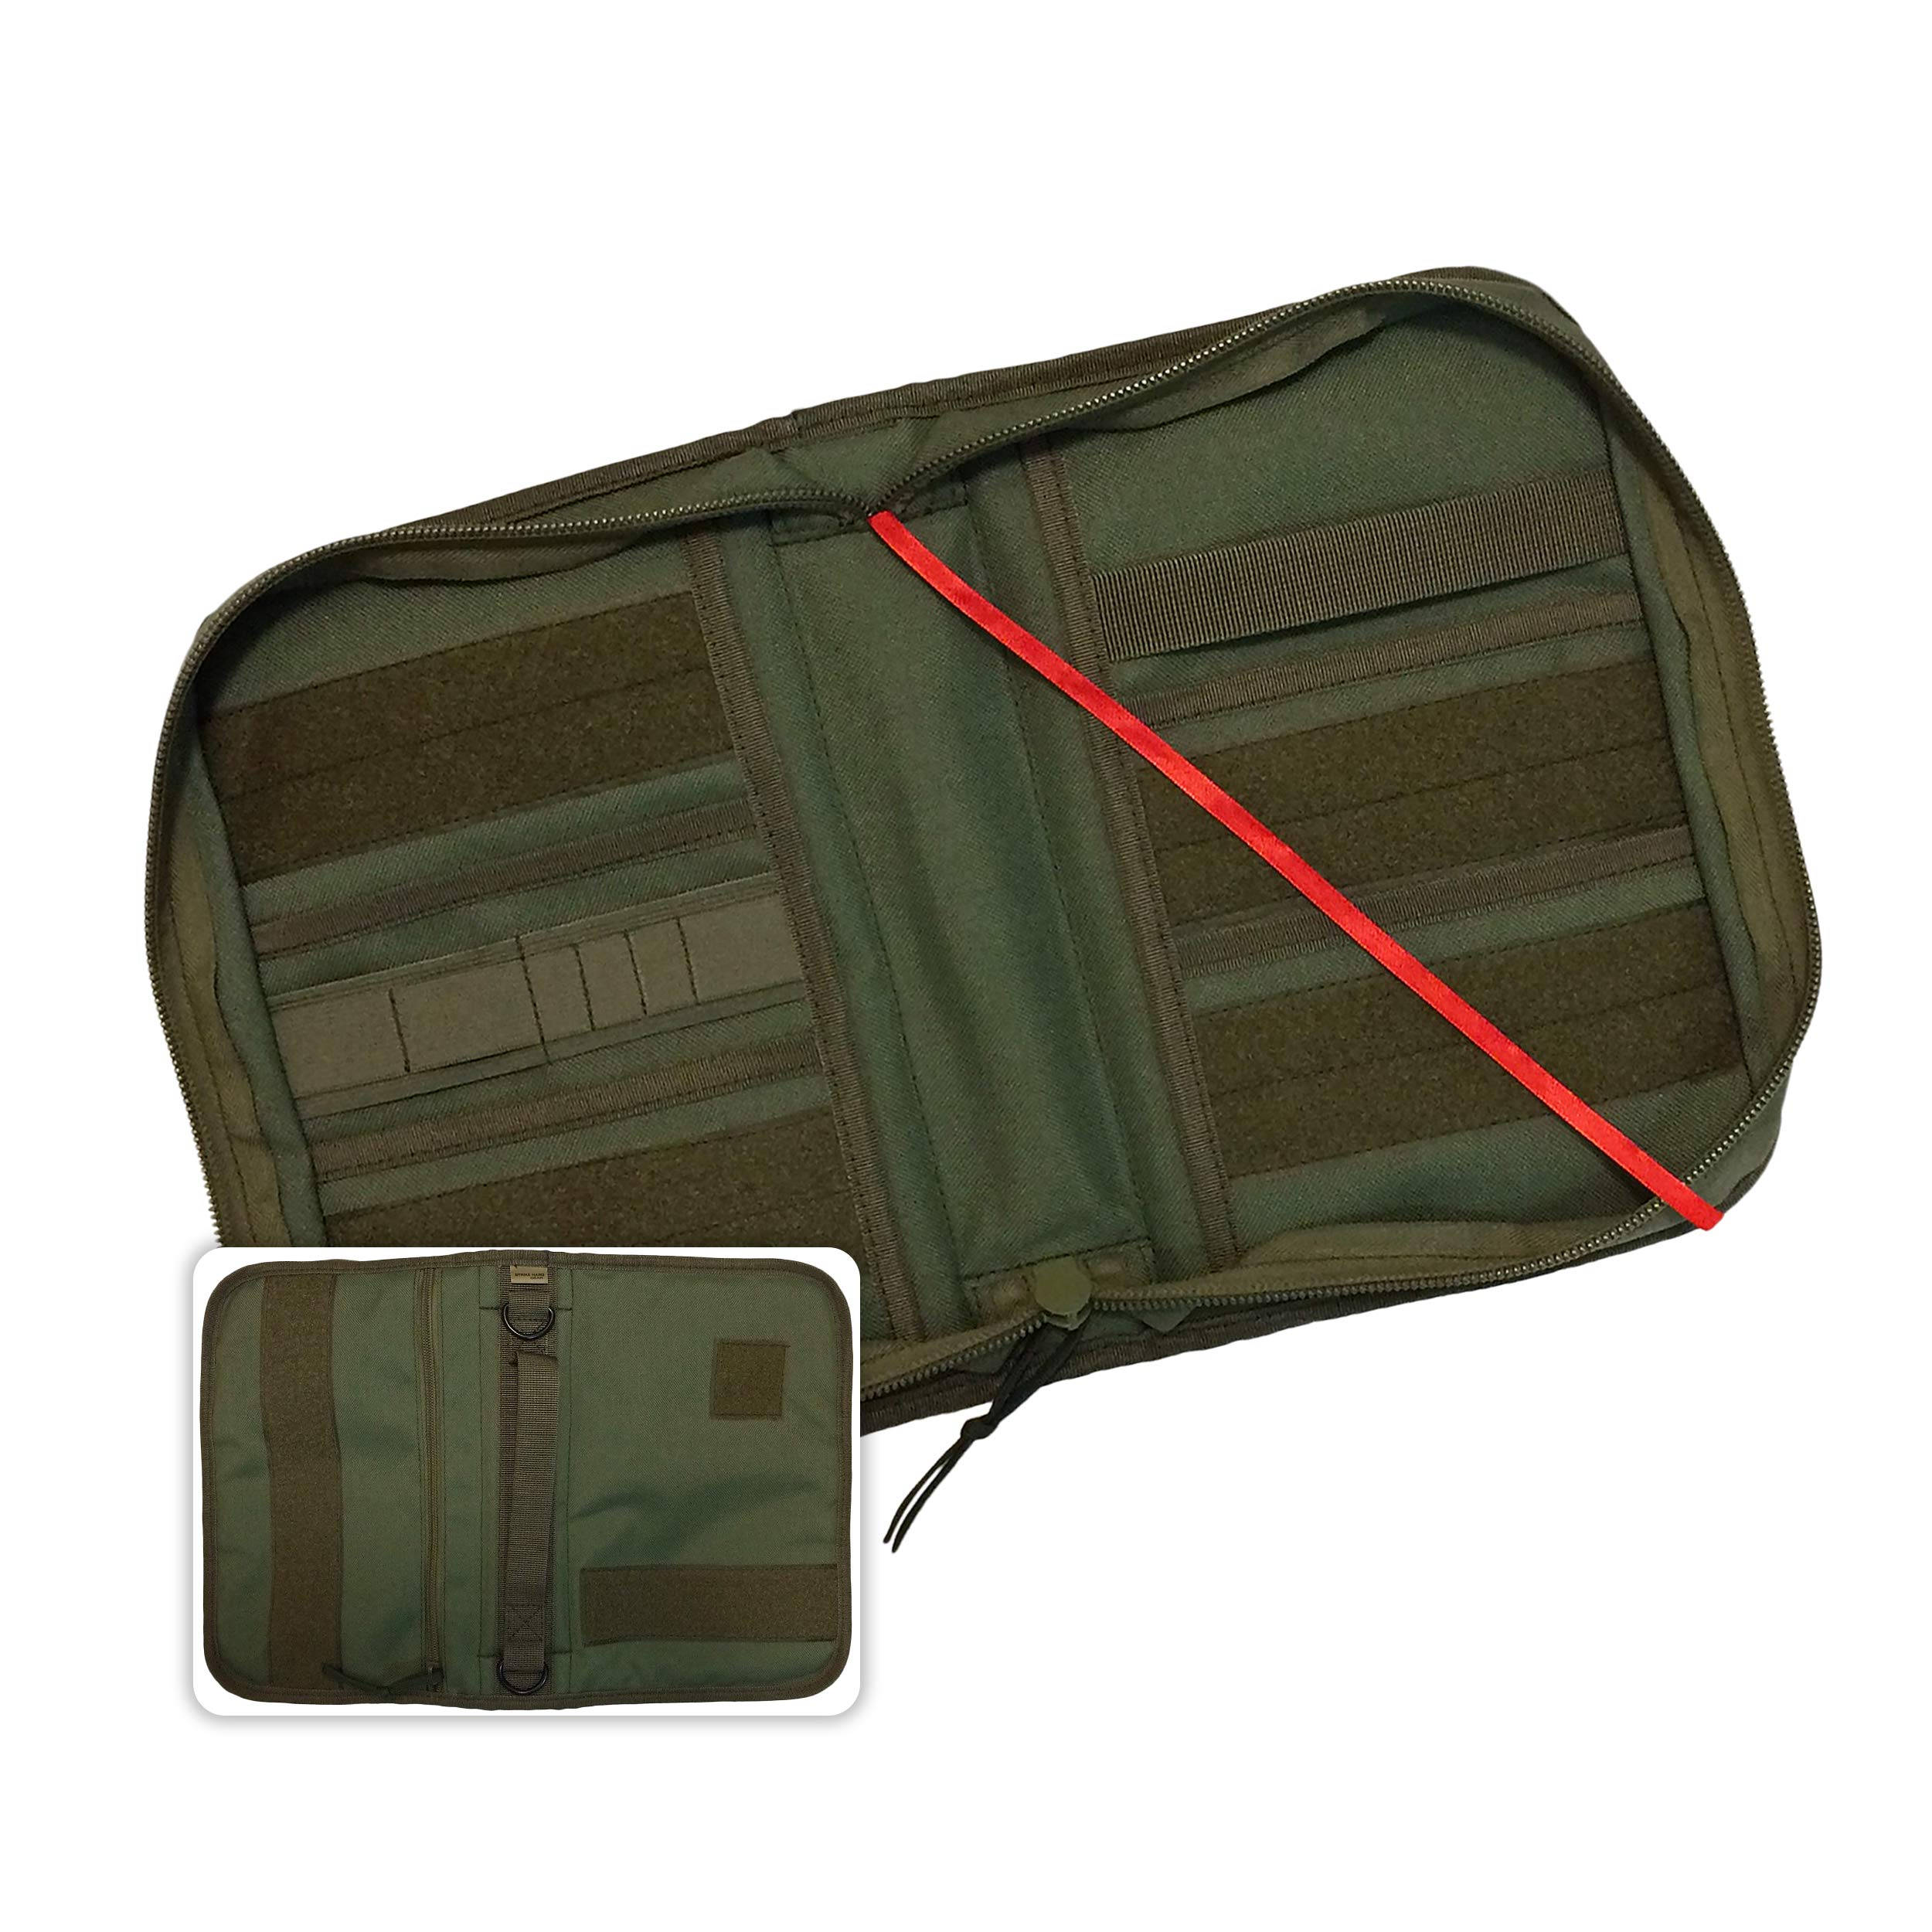 Military Style Medium Bible Cover & Organizer for Men - Personalize Your Camo Bible Case with Morale Patches That Reflect Your Beliefs. (OD Green) by Righteous Grunt